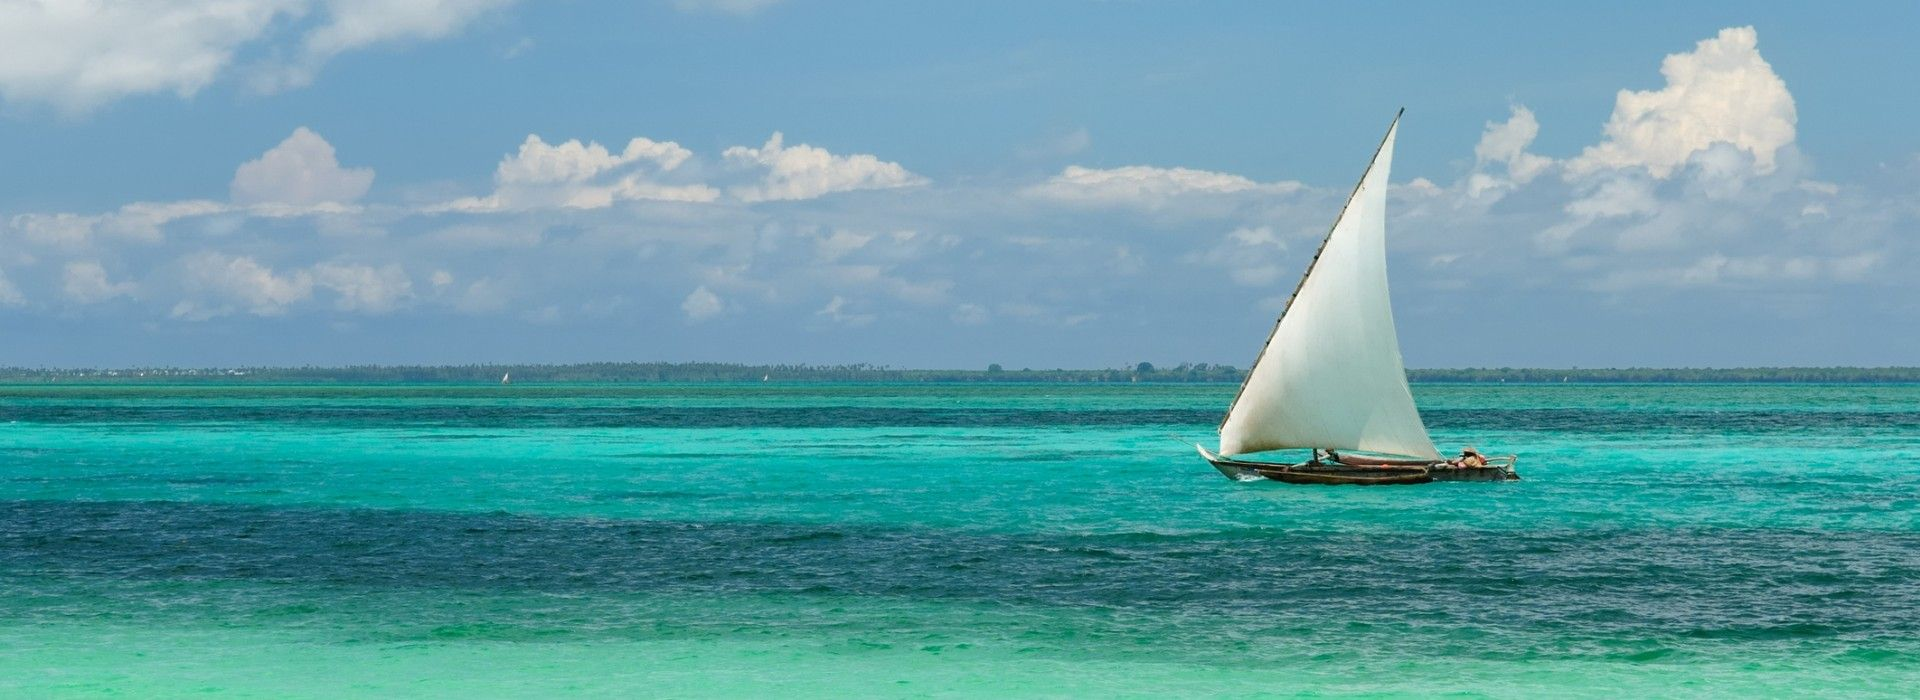 Holidays to Zanzibar is incomplete without visiting its beaches